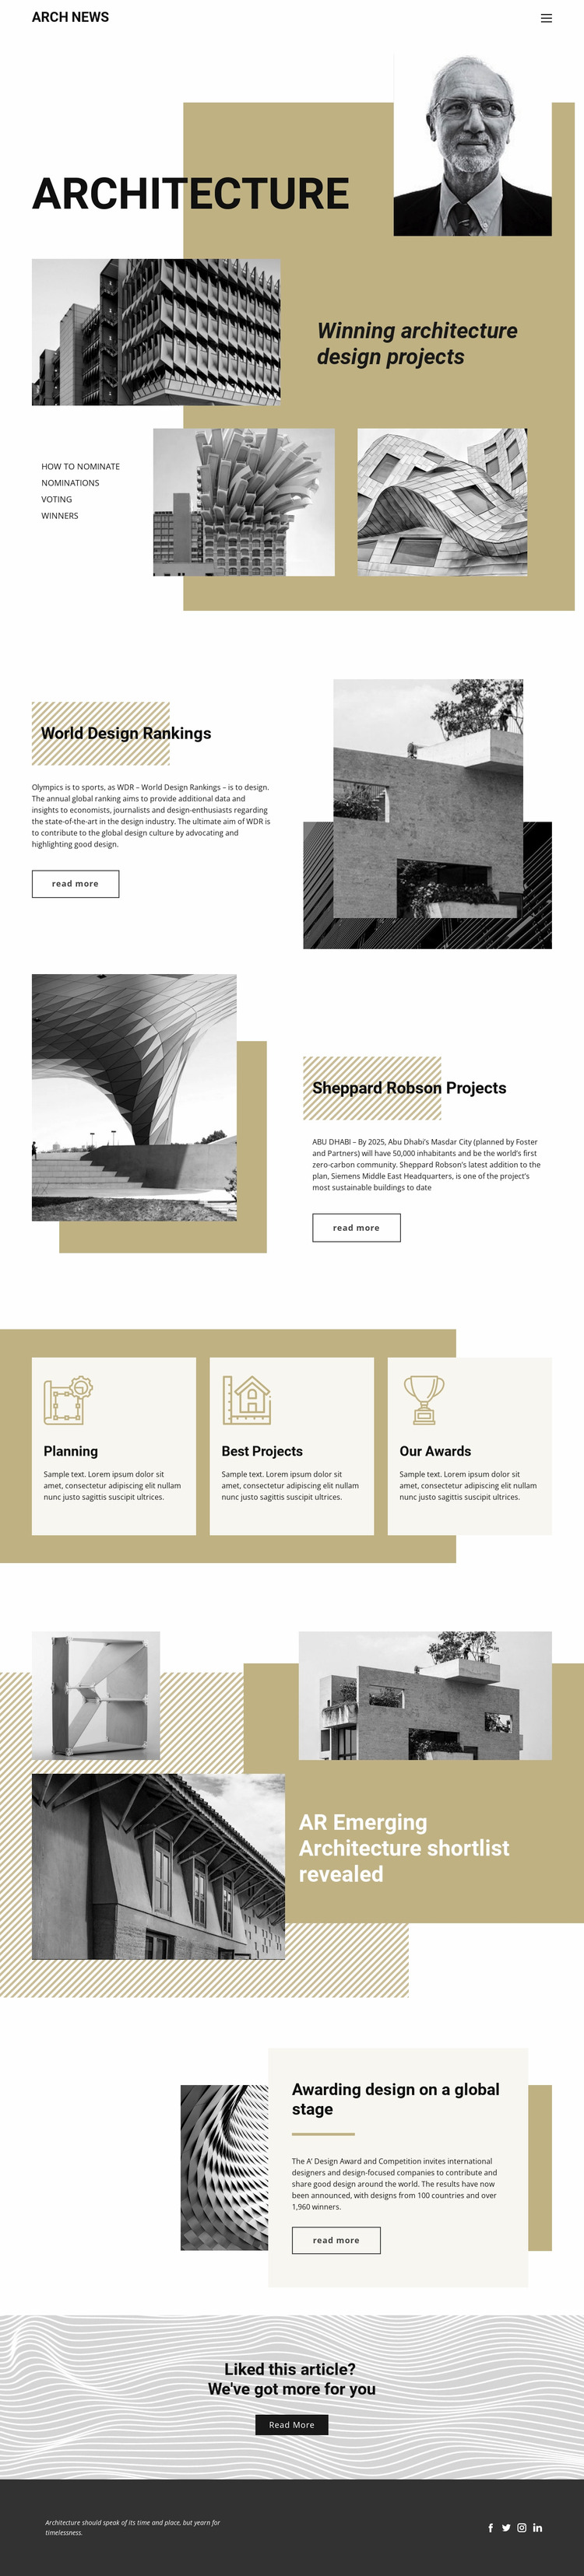 Design of Architecture WordPress Website Builder